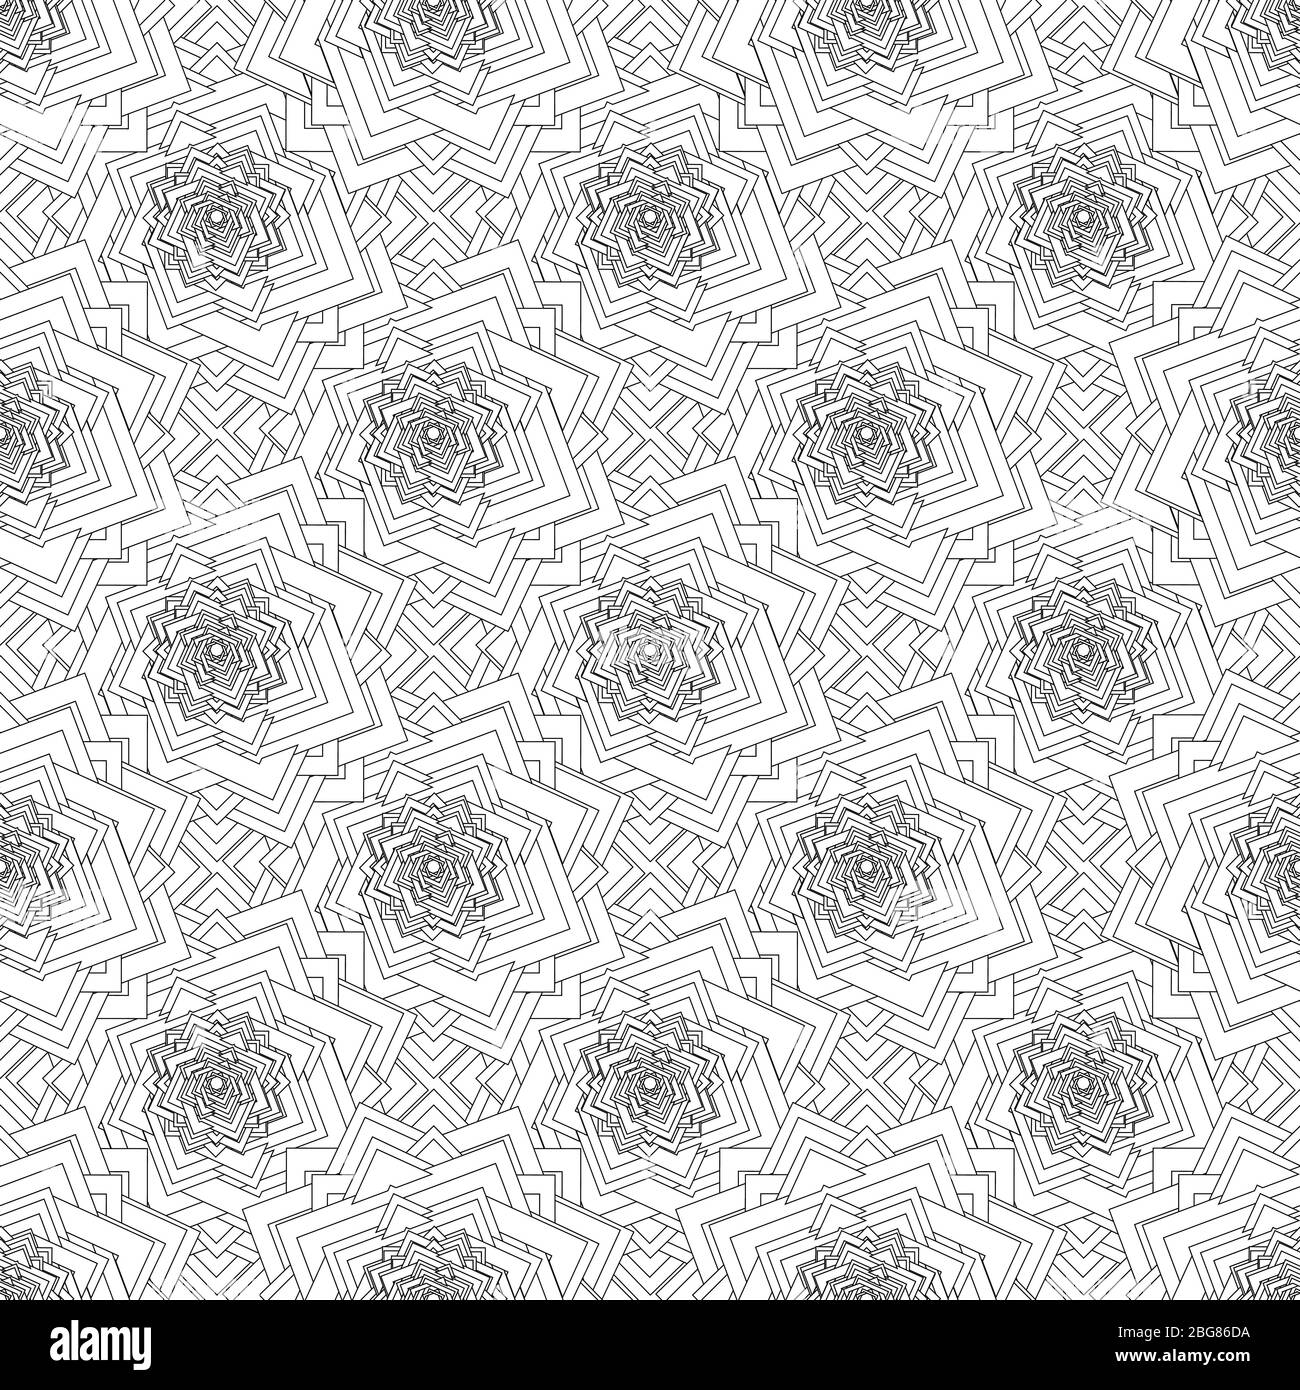 Abstract For Banner Design Floral Illustration Textile Design Texture Flower Seamless Background Beautiful Vector Pattern Stock Vector Image Art Alamy